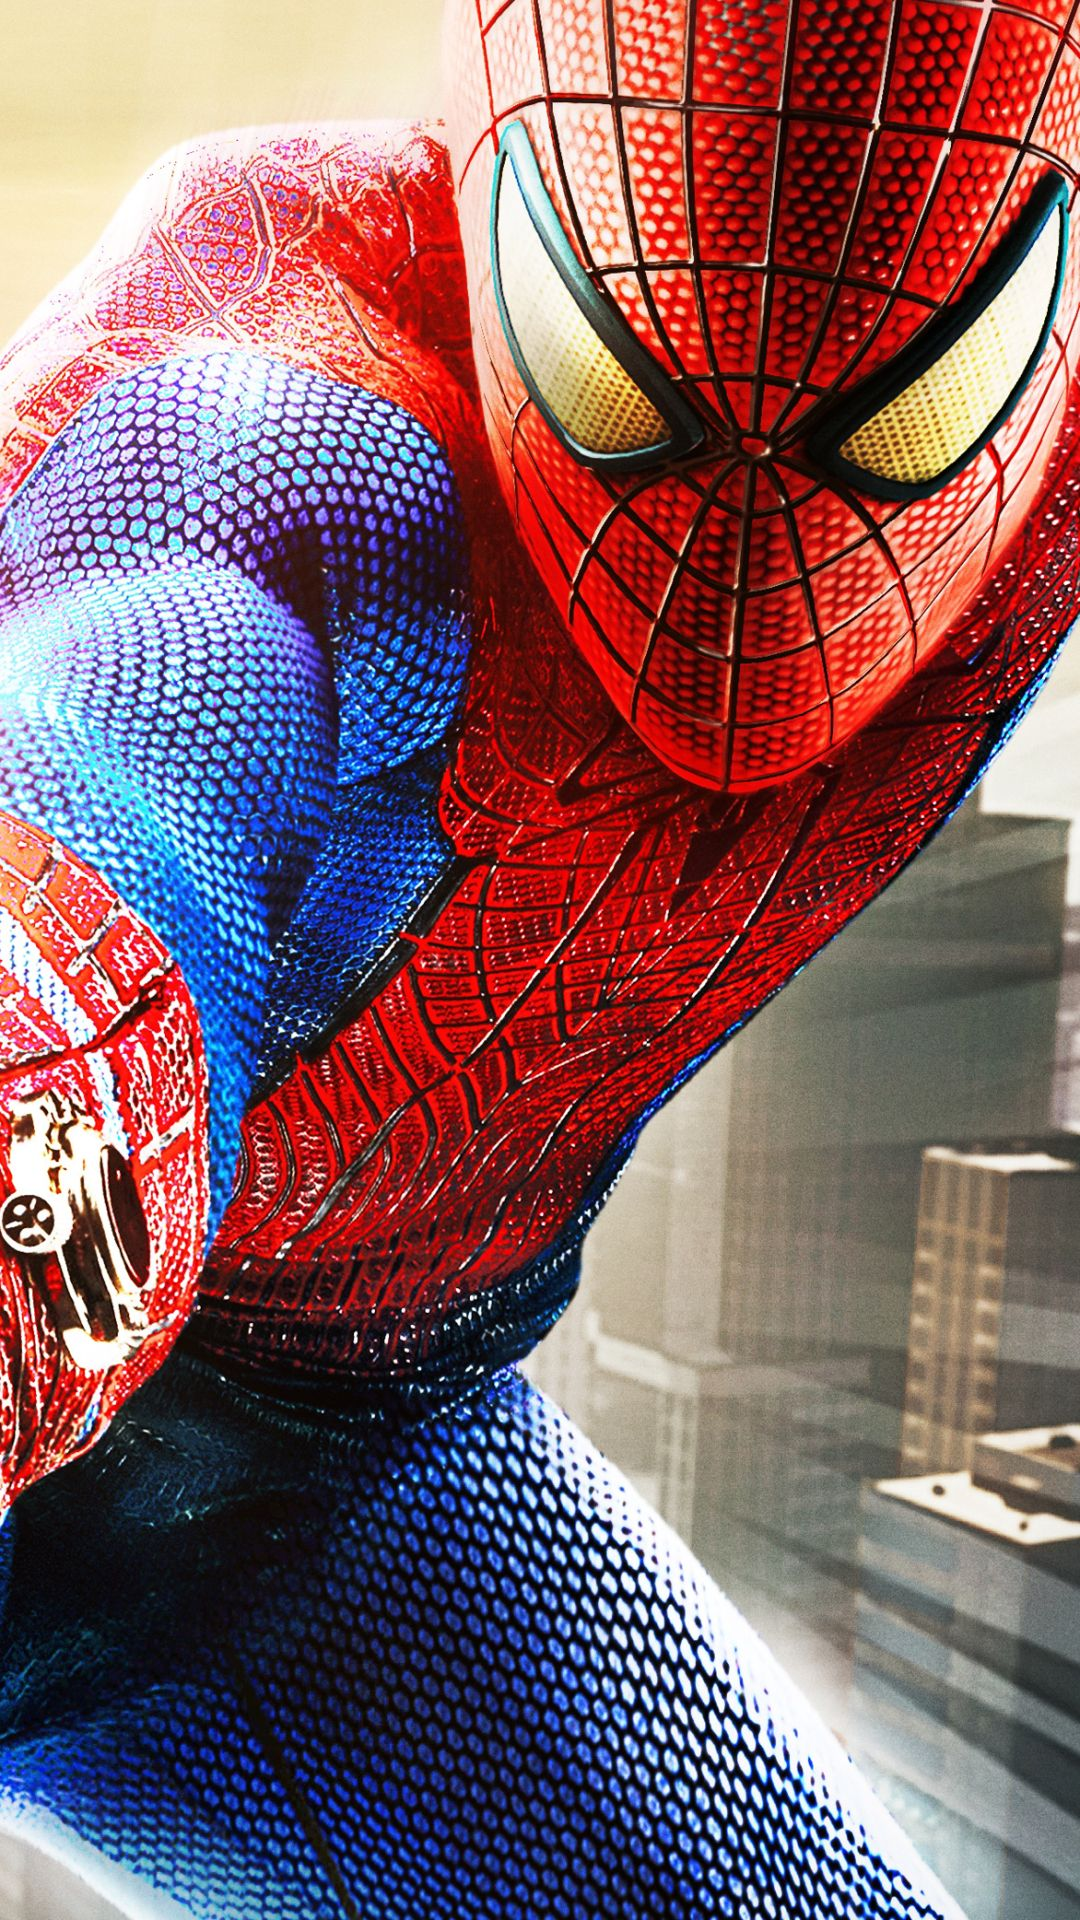 Download This Wallpaper Moviethe Amazing Spider Man 1080x1920 For